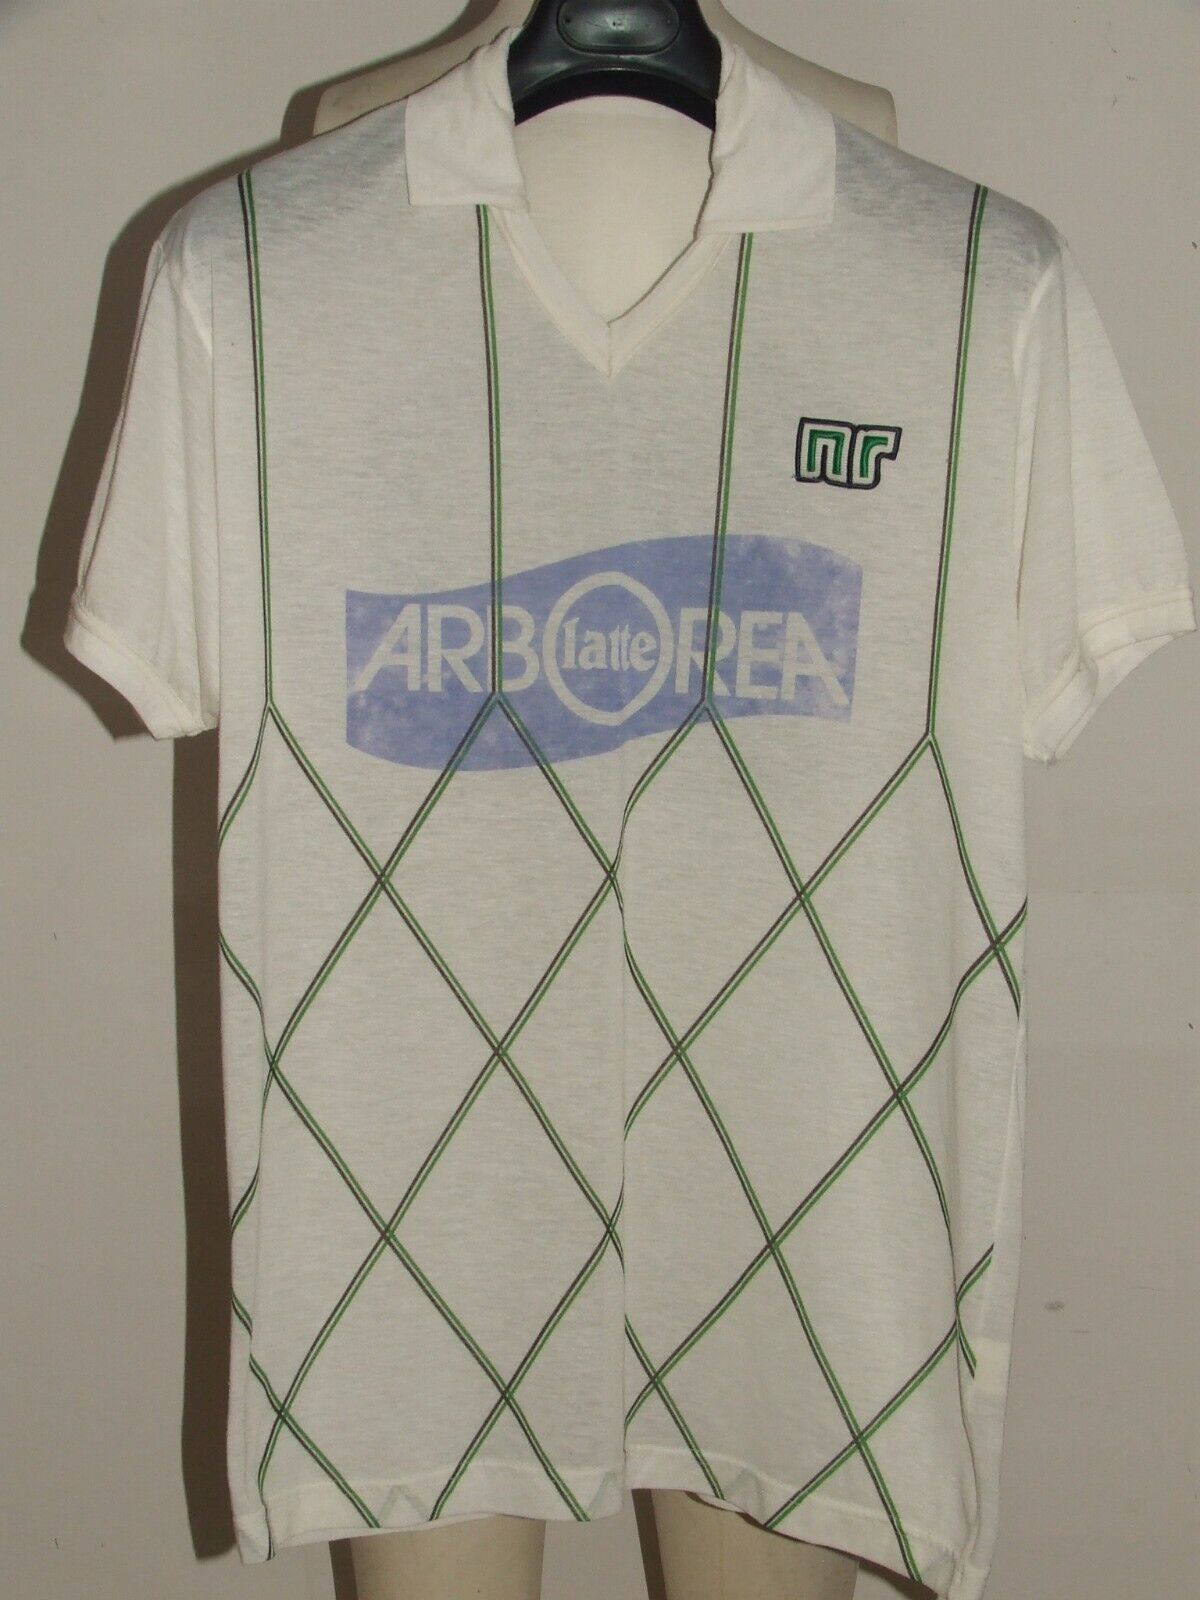 MAGLIA CALCIO SHIRT MAILLOT VINTAGE ENNERRE NR n°10 MADE IN ITALY 162 tg. 50